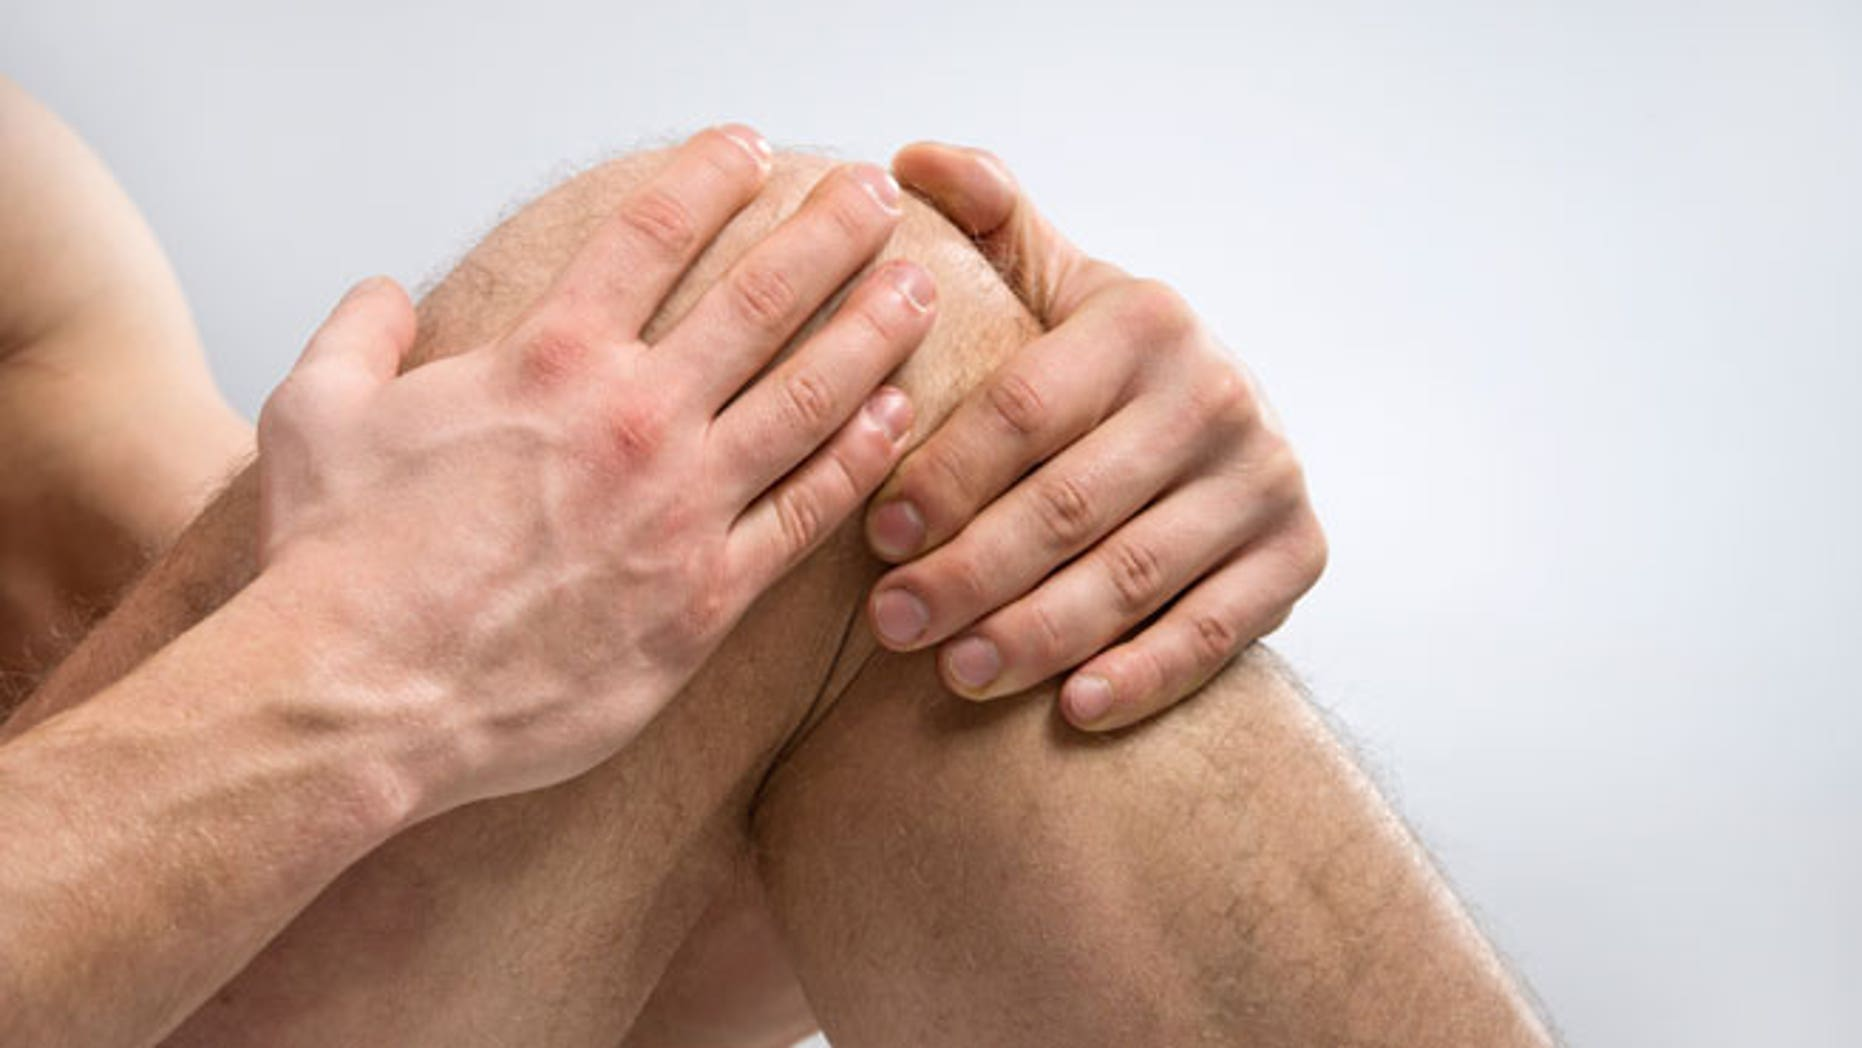 Acupuncture May Not Help Chronic Knee Pain